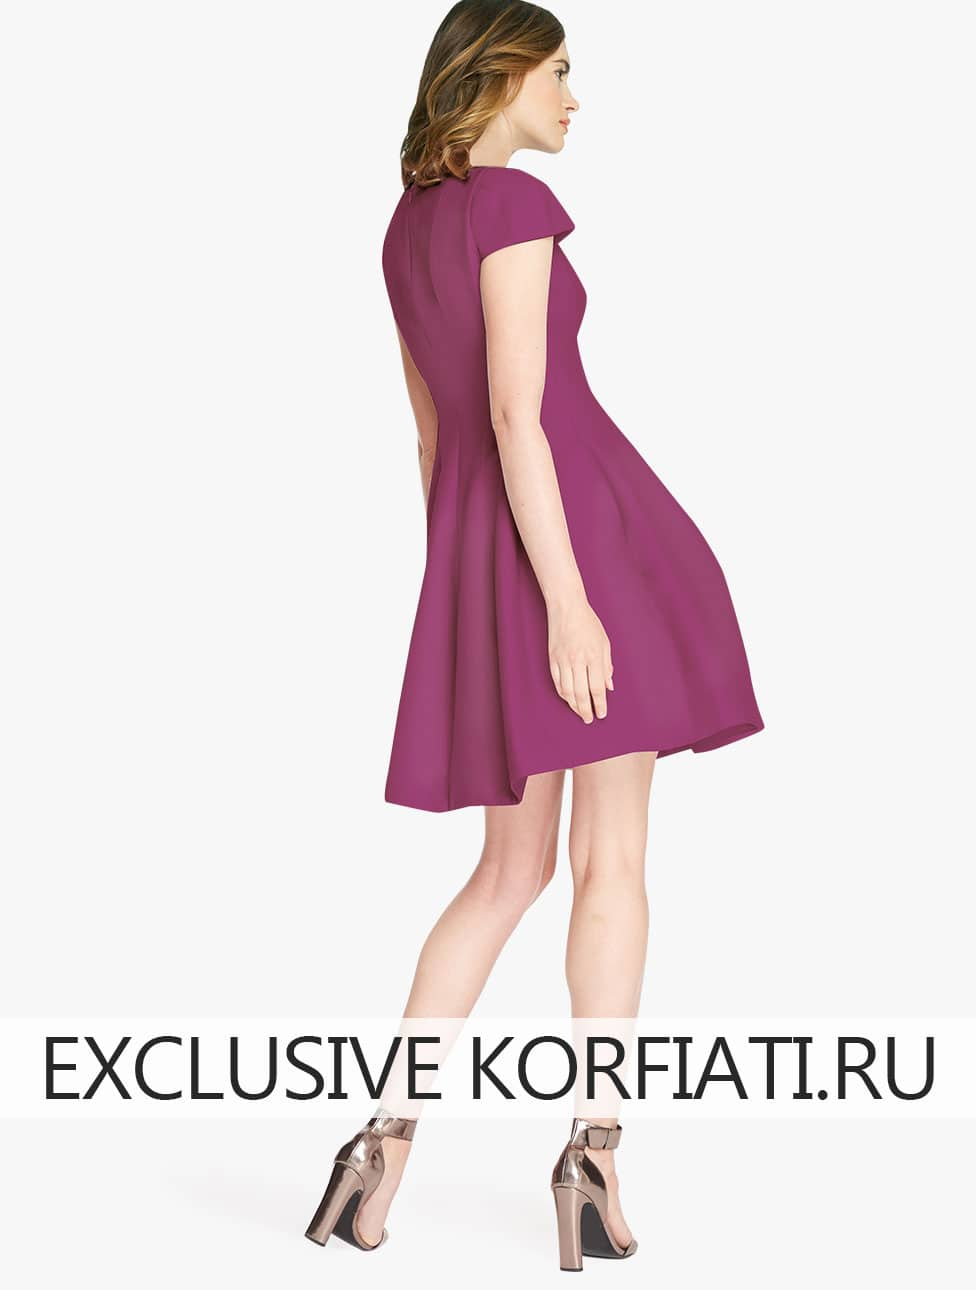 http://korfiati.ru/wp-content/uploads/2015/09/pink-dress-foto2.jpg